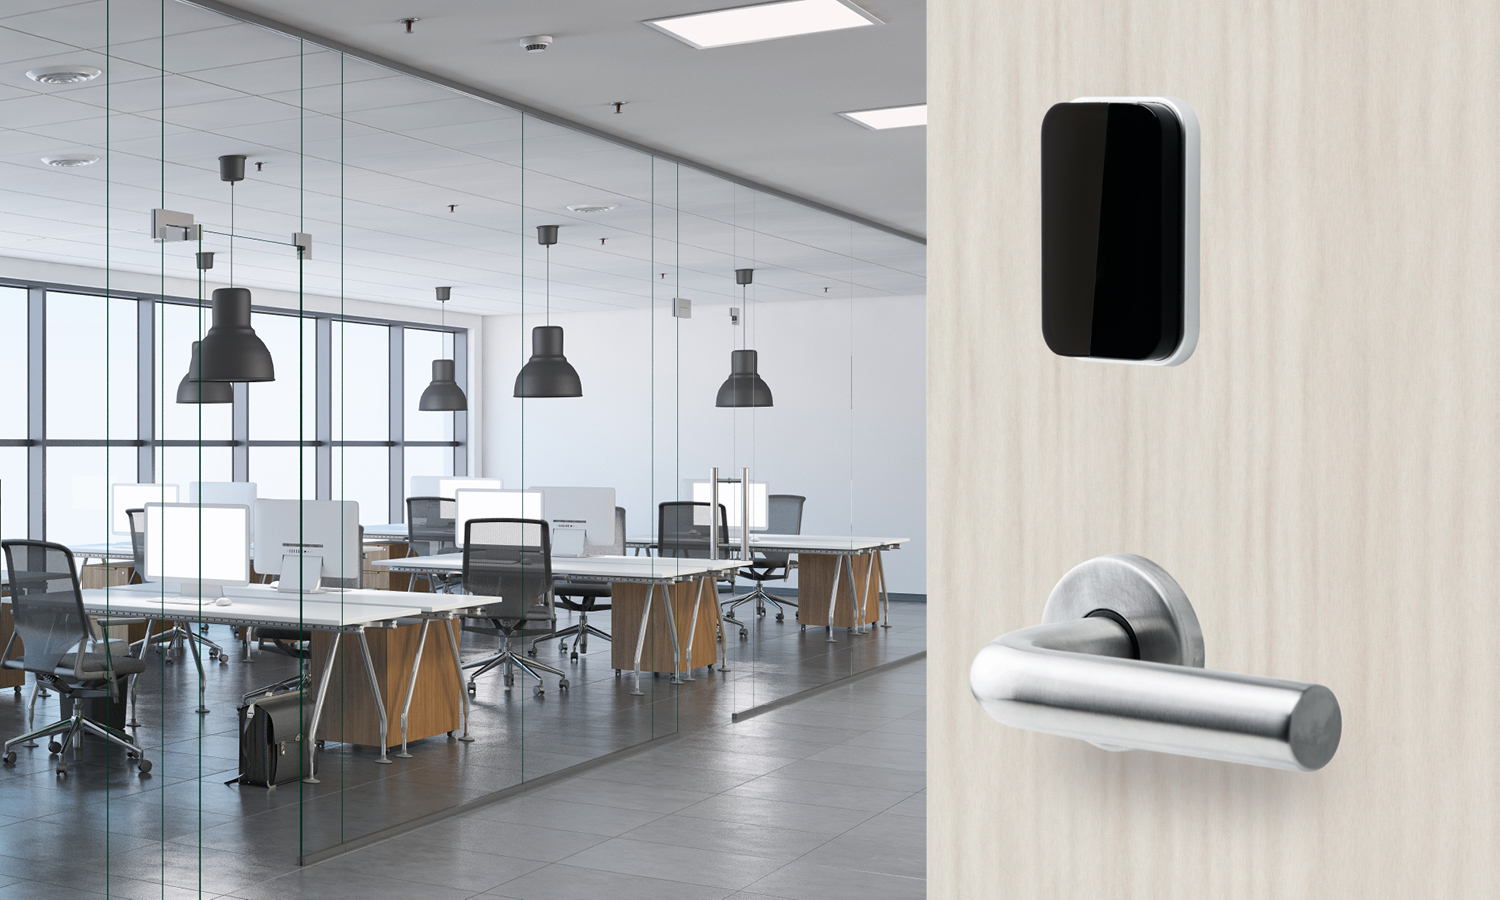 The new SMARTair® Lock puts advanced electronic access control into a familiar format